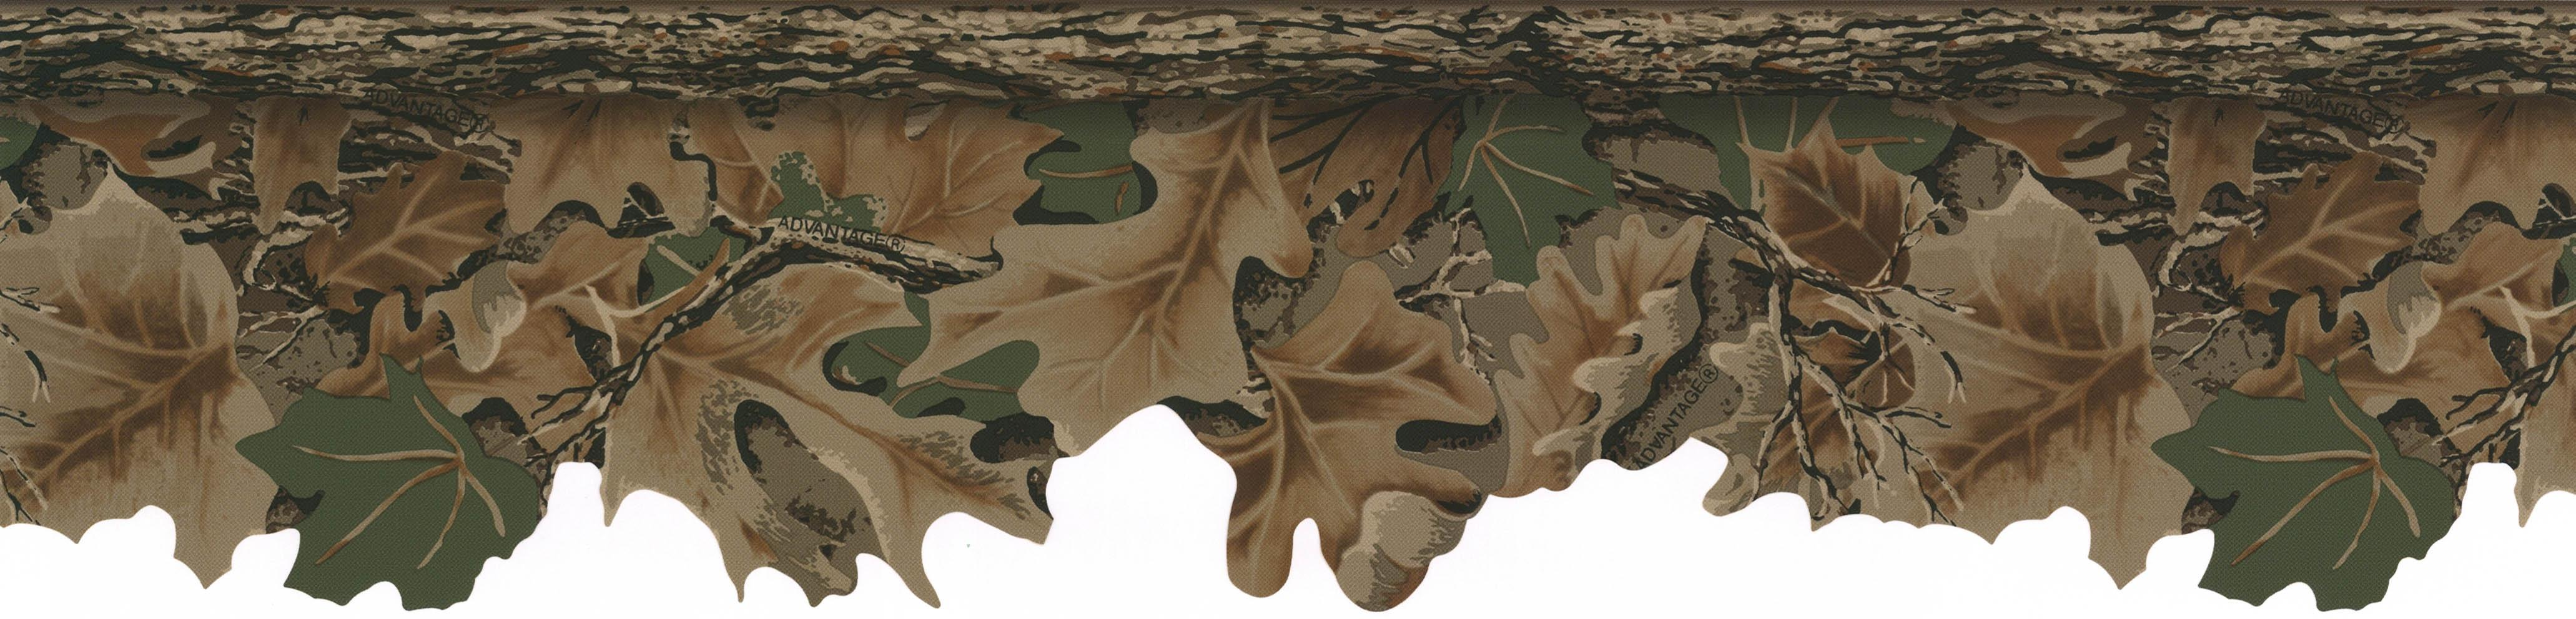 York Wallcovering Real Tree Camo Border Search Results 4125x992